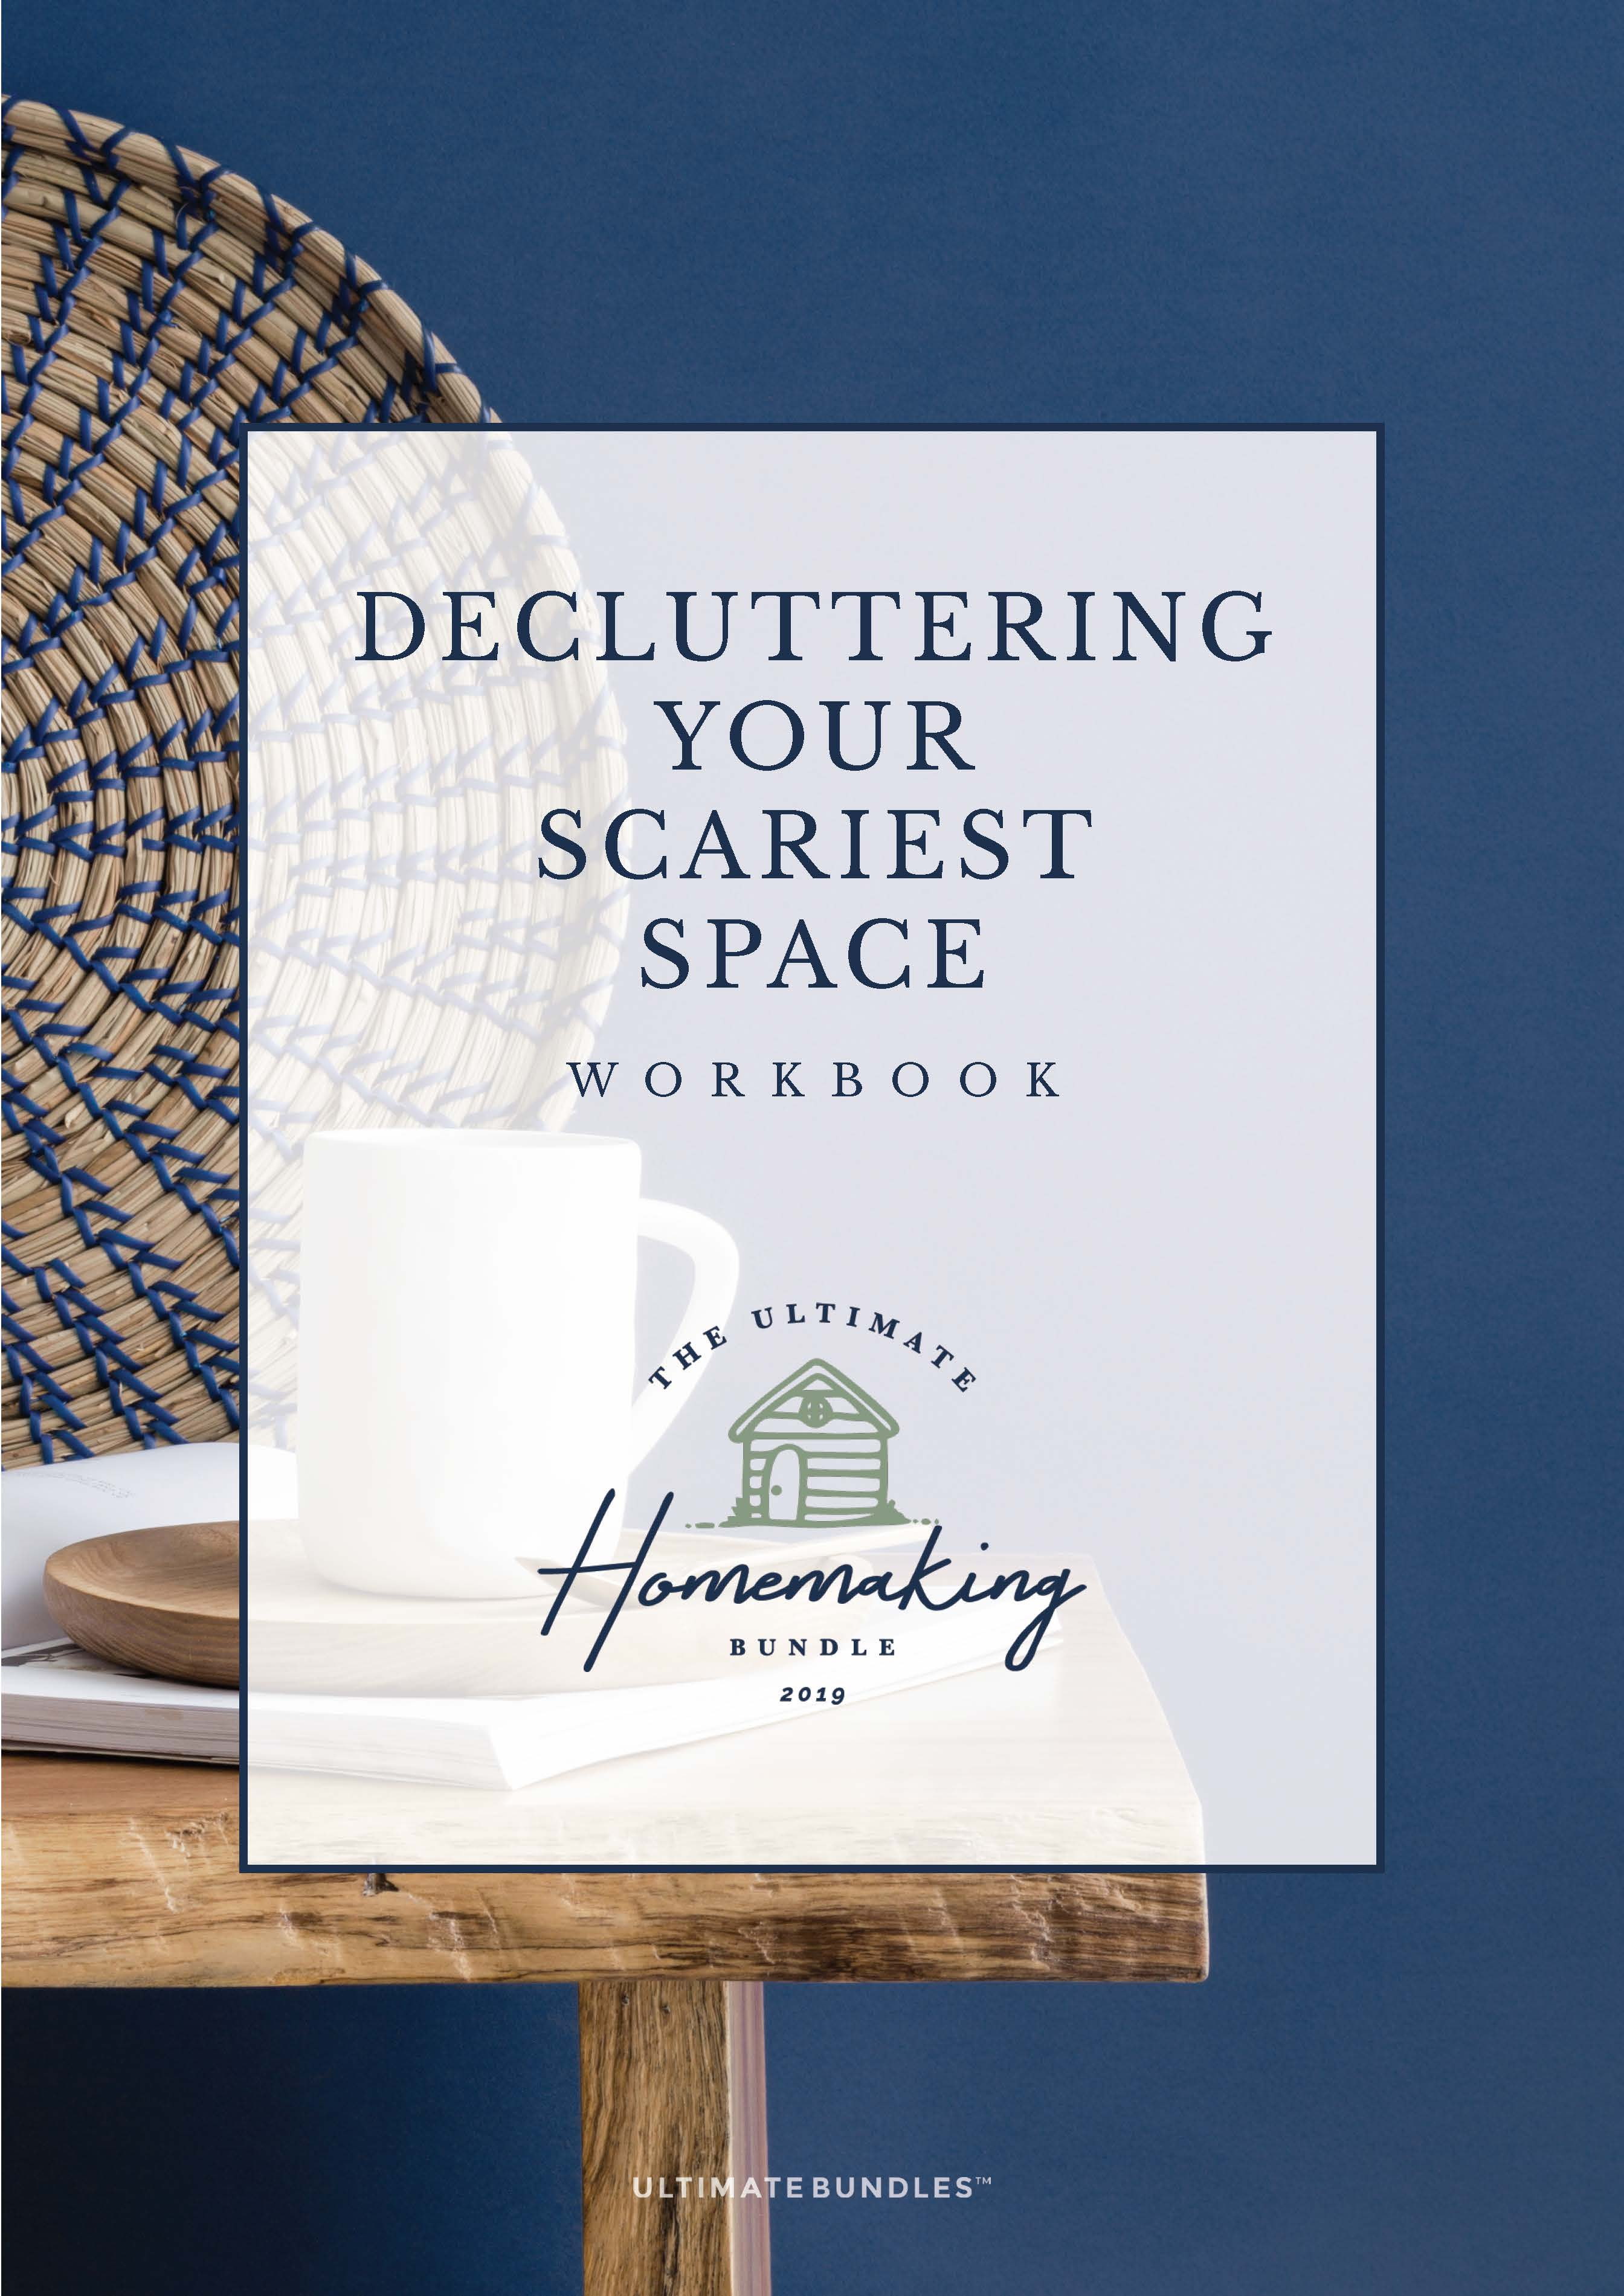 Declutter Your Scariest Place